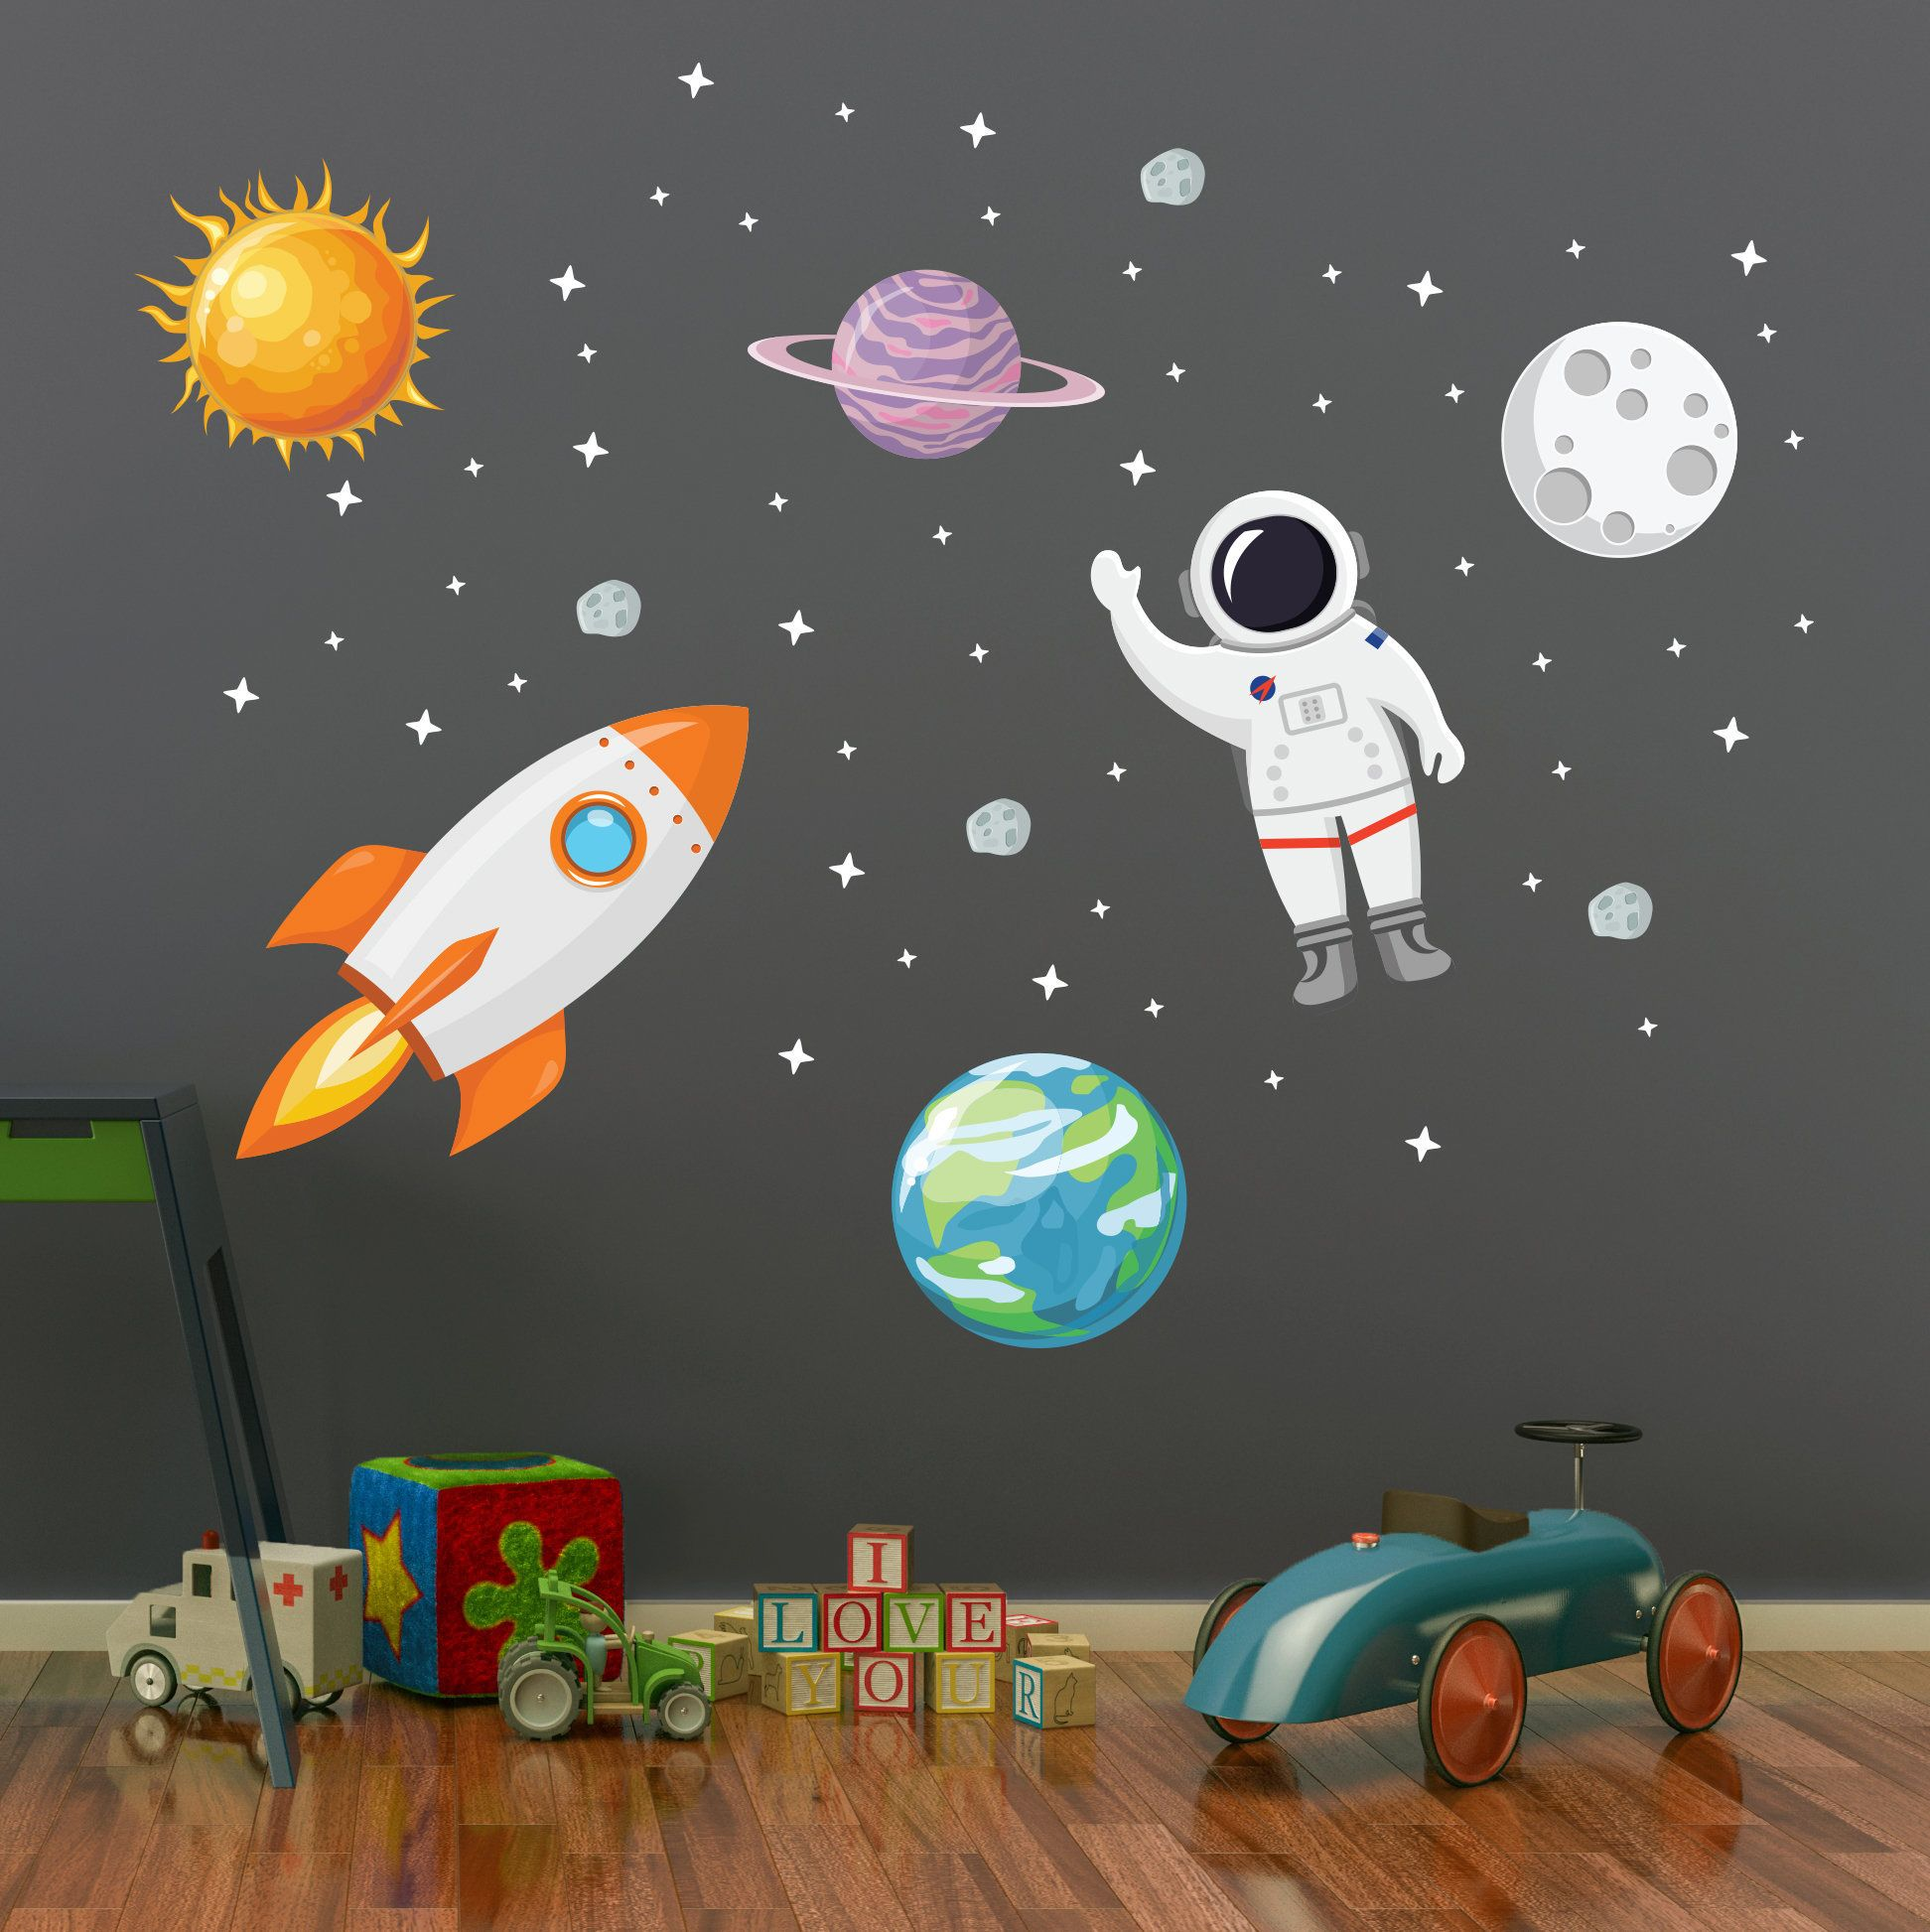 Outer Space Wall Decal Stars Planets Astronaut Rocket Solar Etsy In 2021 Space Wall Decals Kids Wall Decals Outer Space Bedroom